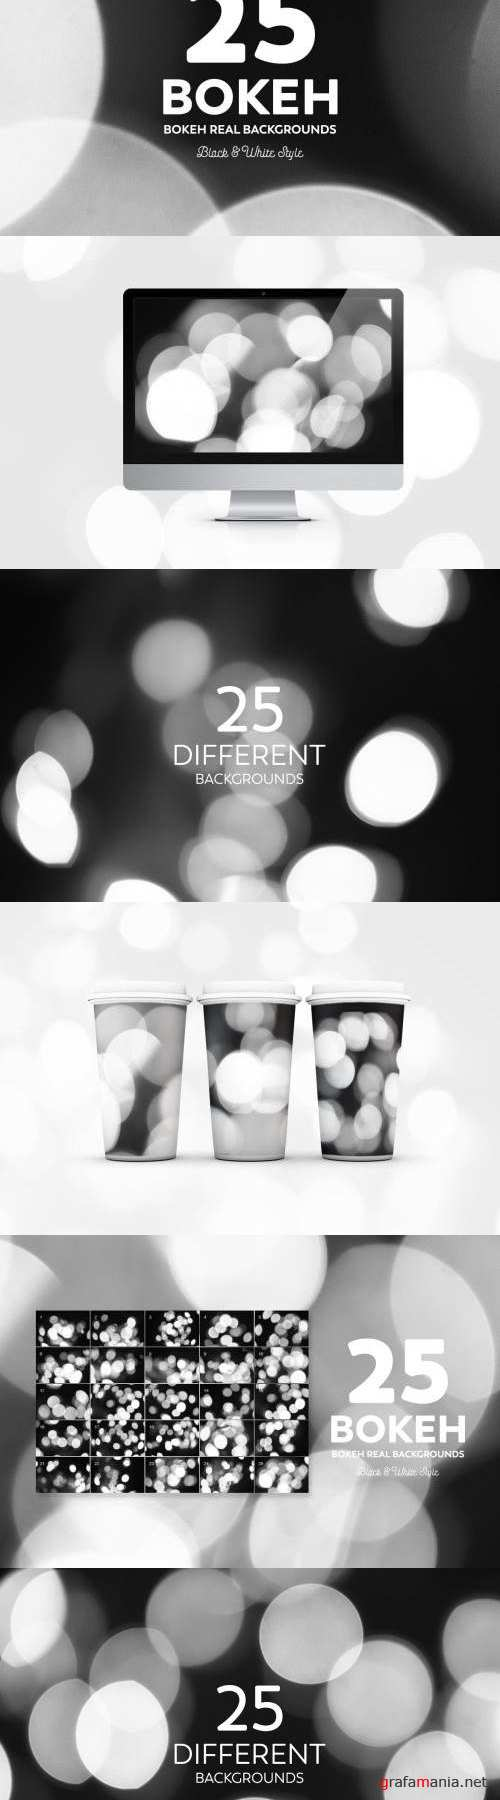 25 Bokeh Real Backgrounds Black & White Style